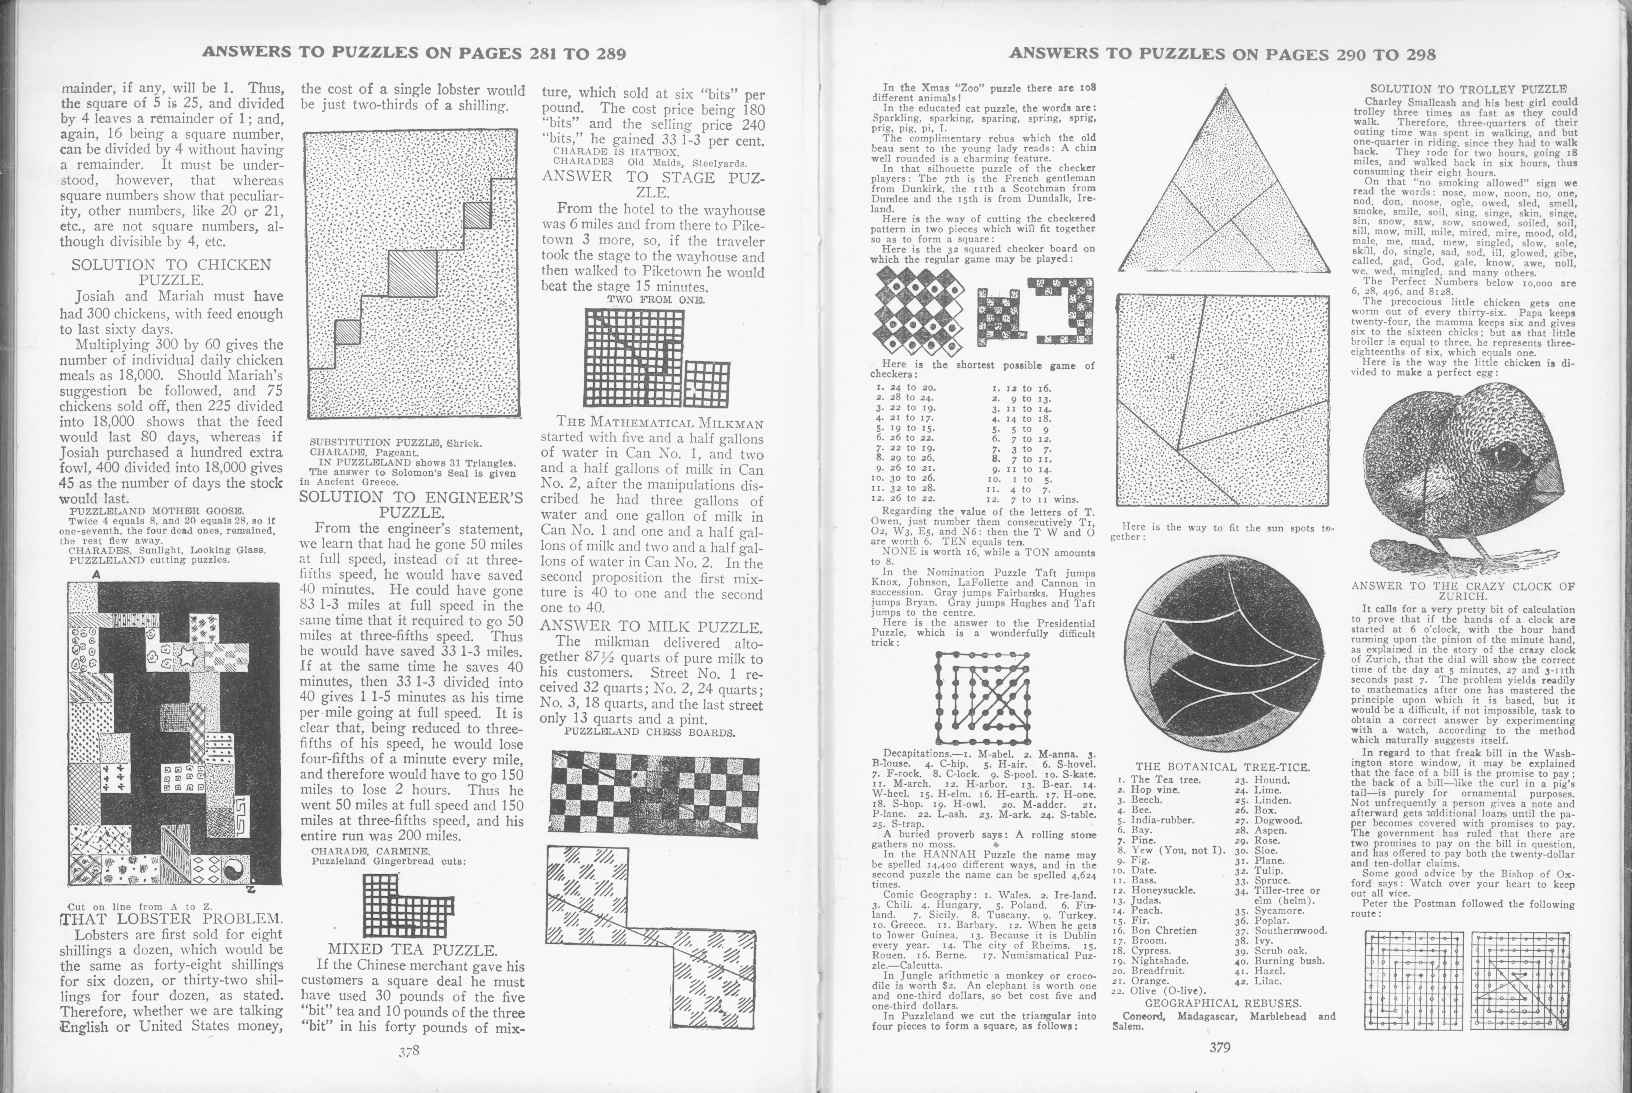 Sam Loyd - Cyclopedia of Puzzles - page 378-379